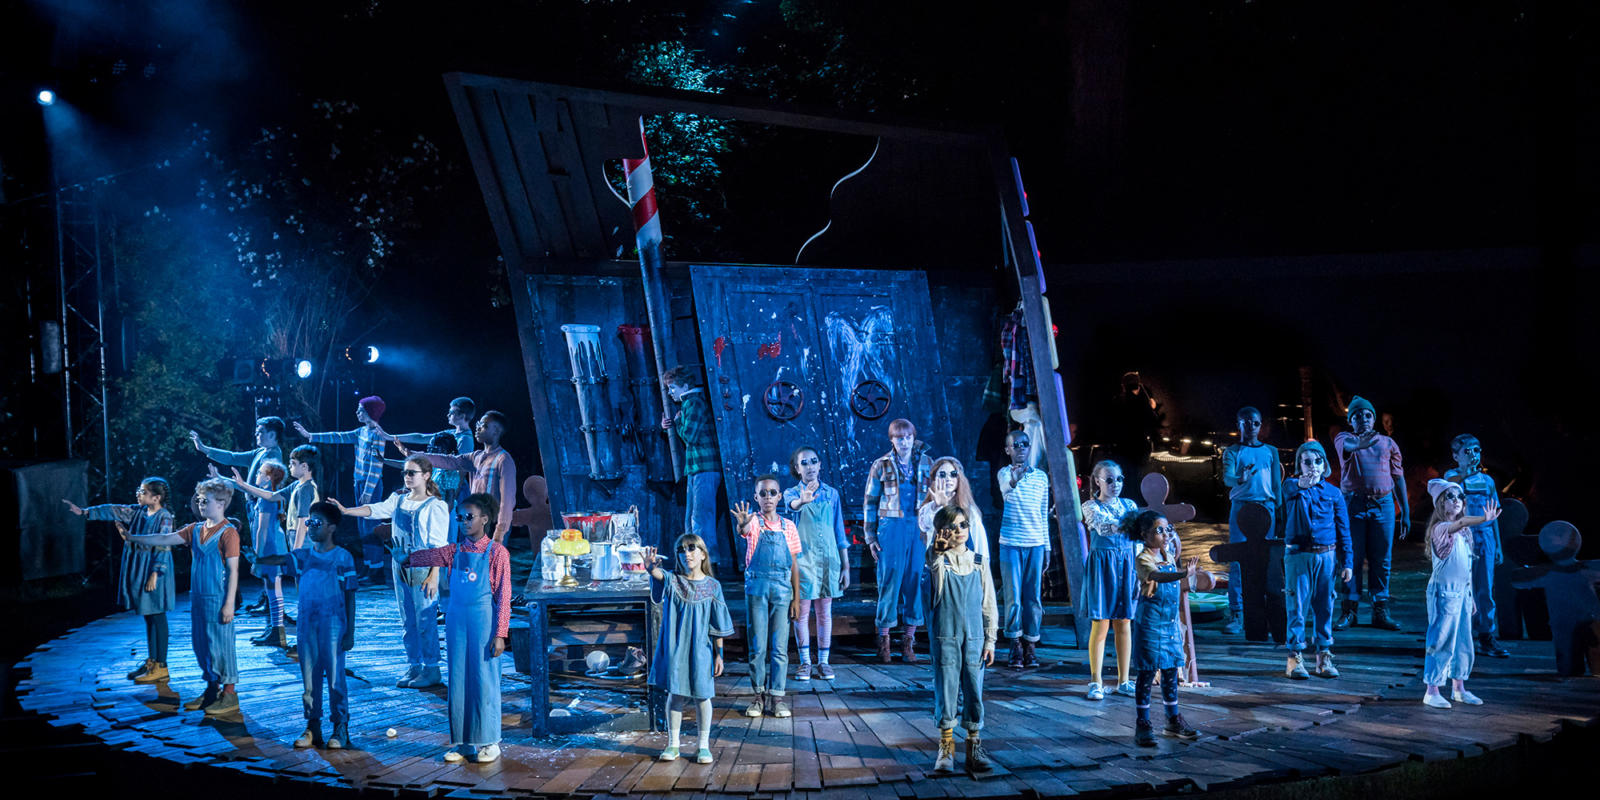 ENO Hansel and Gretel at Regent's Park Open Air Theatre: Rachel Kelly and Susanna Hurrell as Hansel and Gretel and Company, (c) Johan Persson.